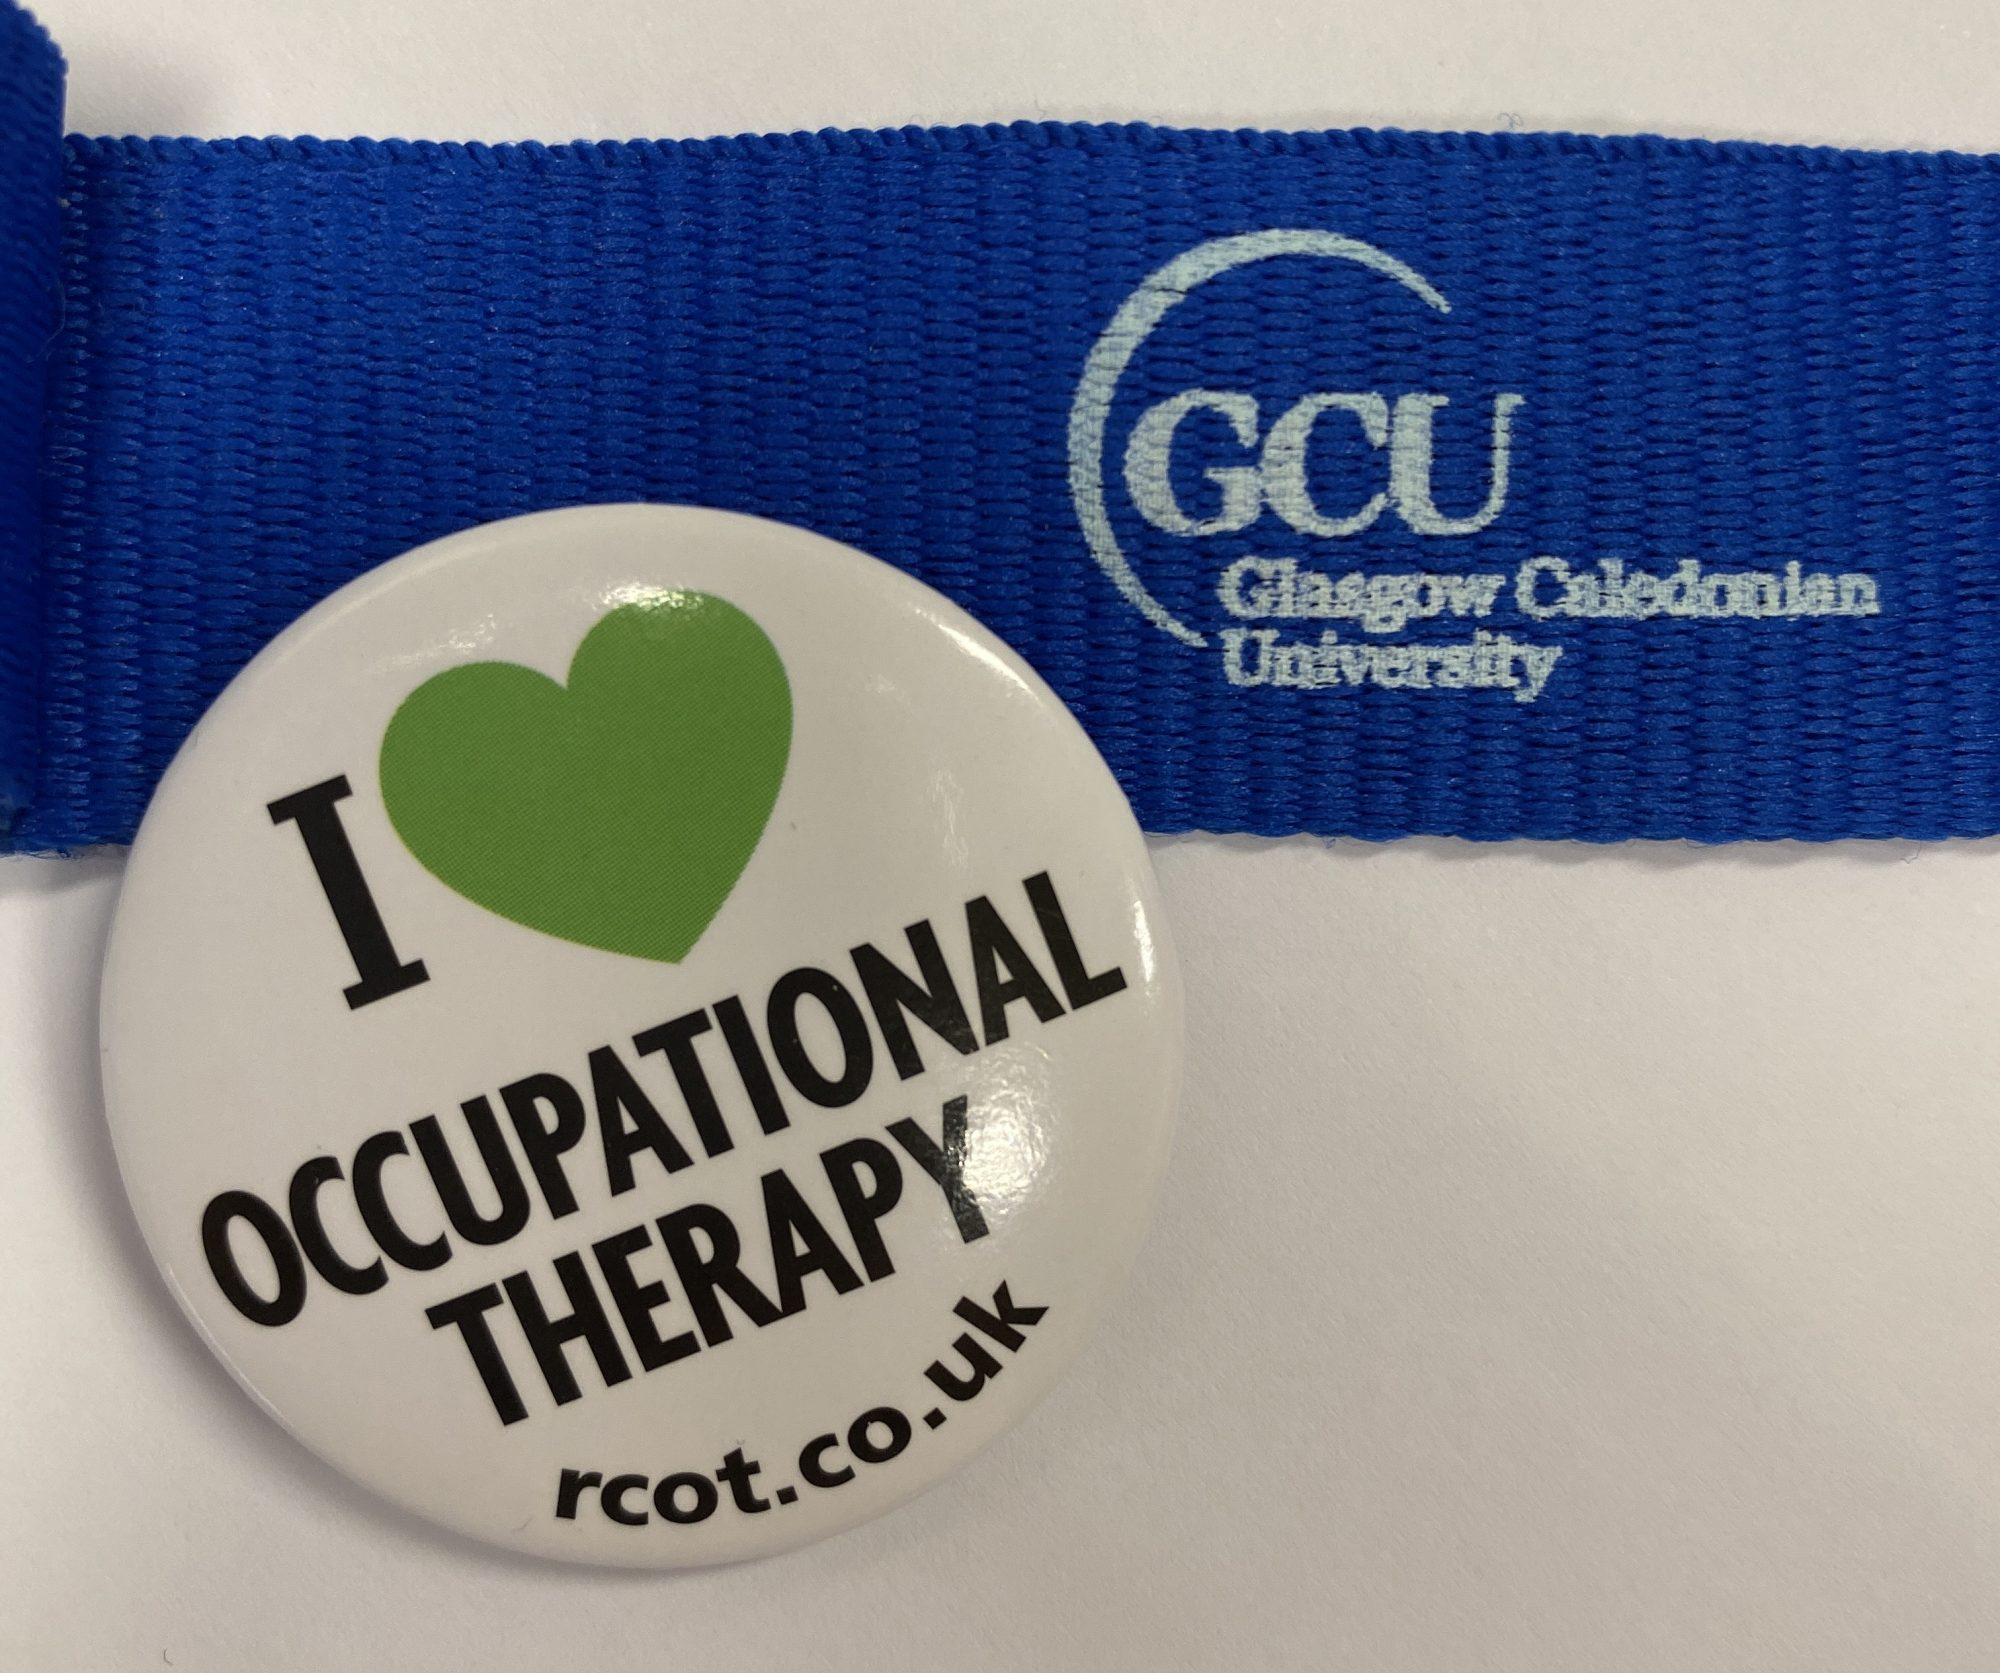 Glasgow Caledonian University Occupational Therapy Blog